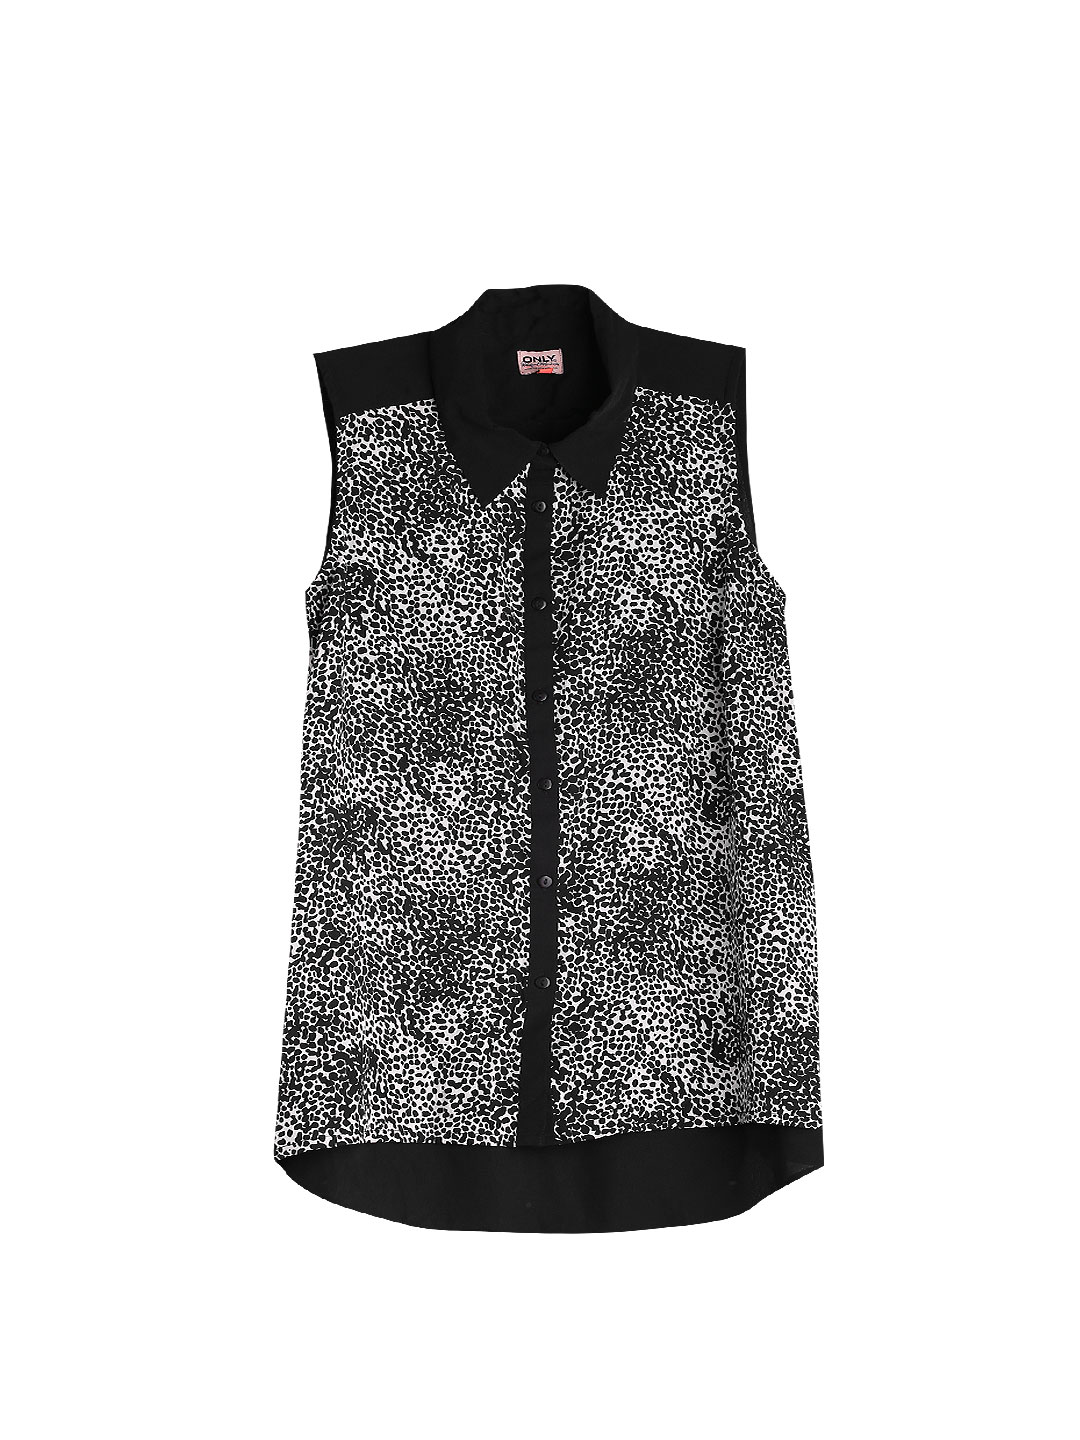 ONLY Black & Off-White Printed Shirt